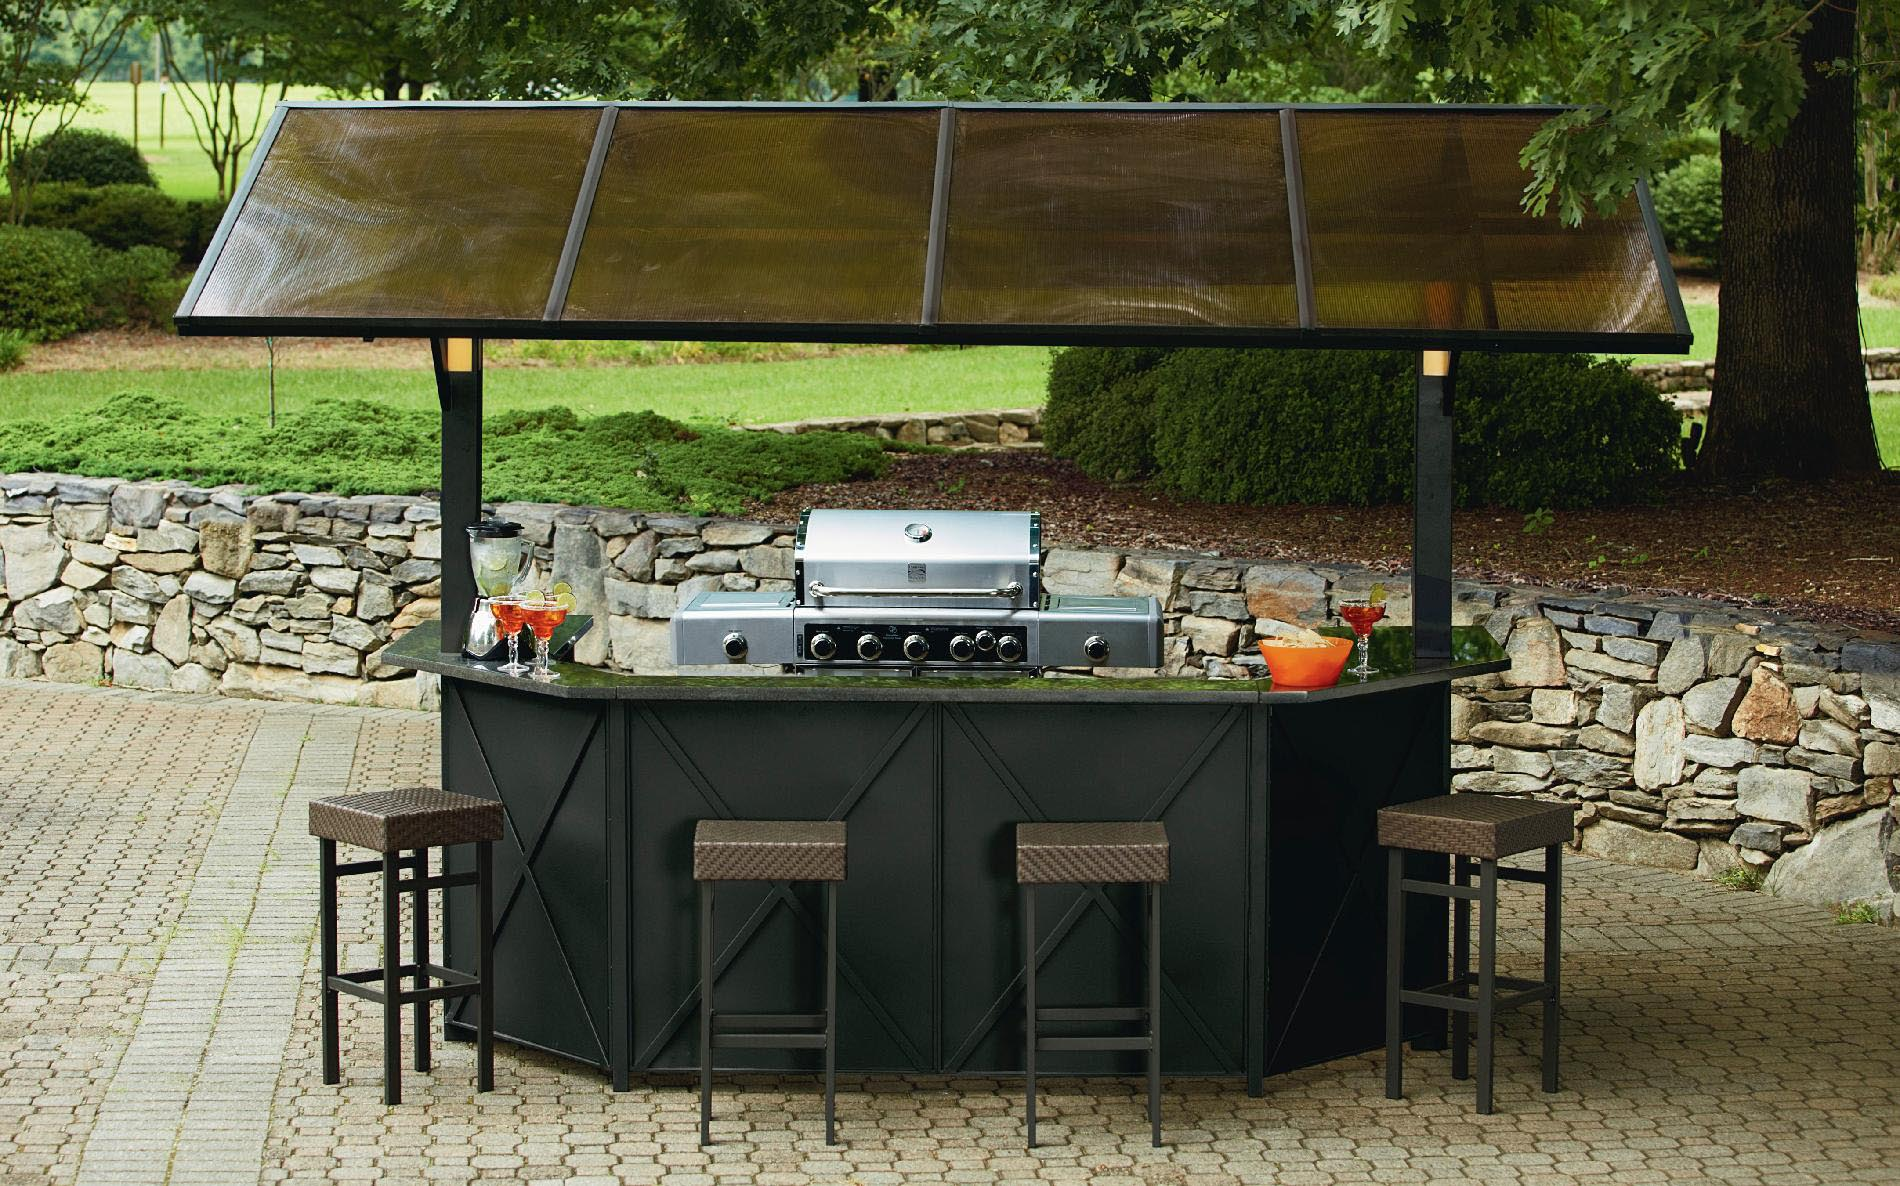 Metal Frame Gazebo with Bar